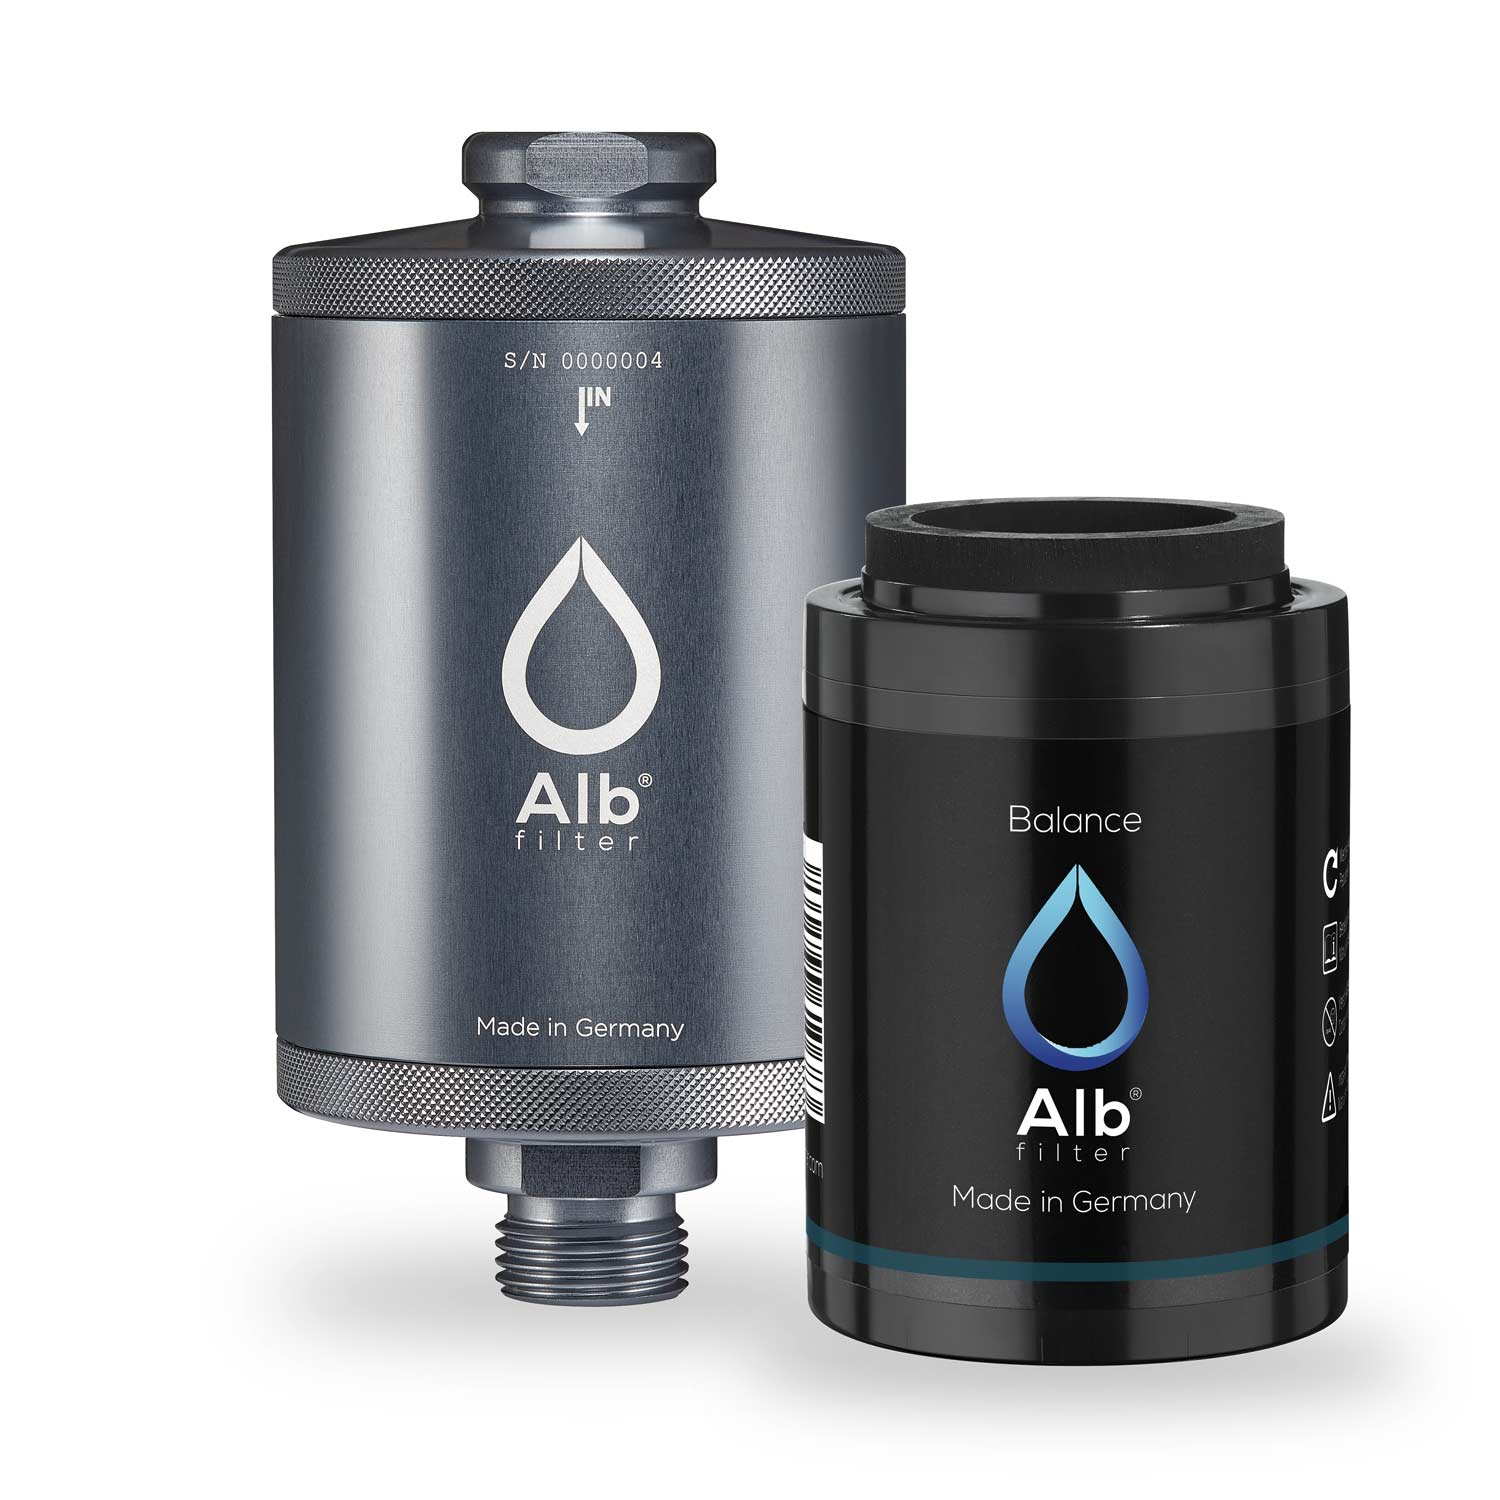 Alb shower filter Balance with replacement cartridge against organic pollutants.